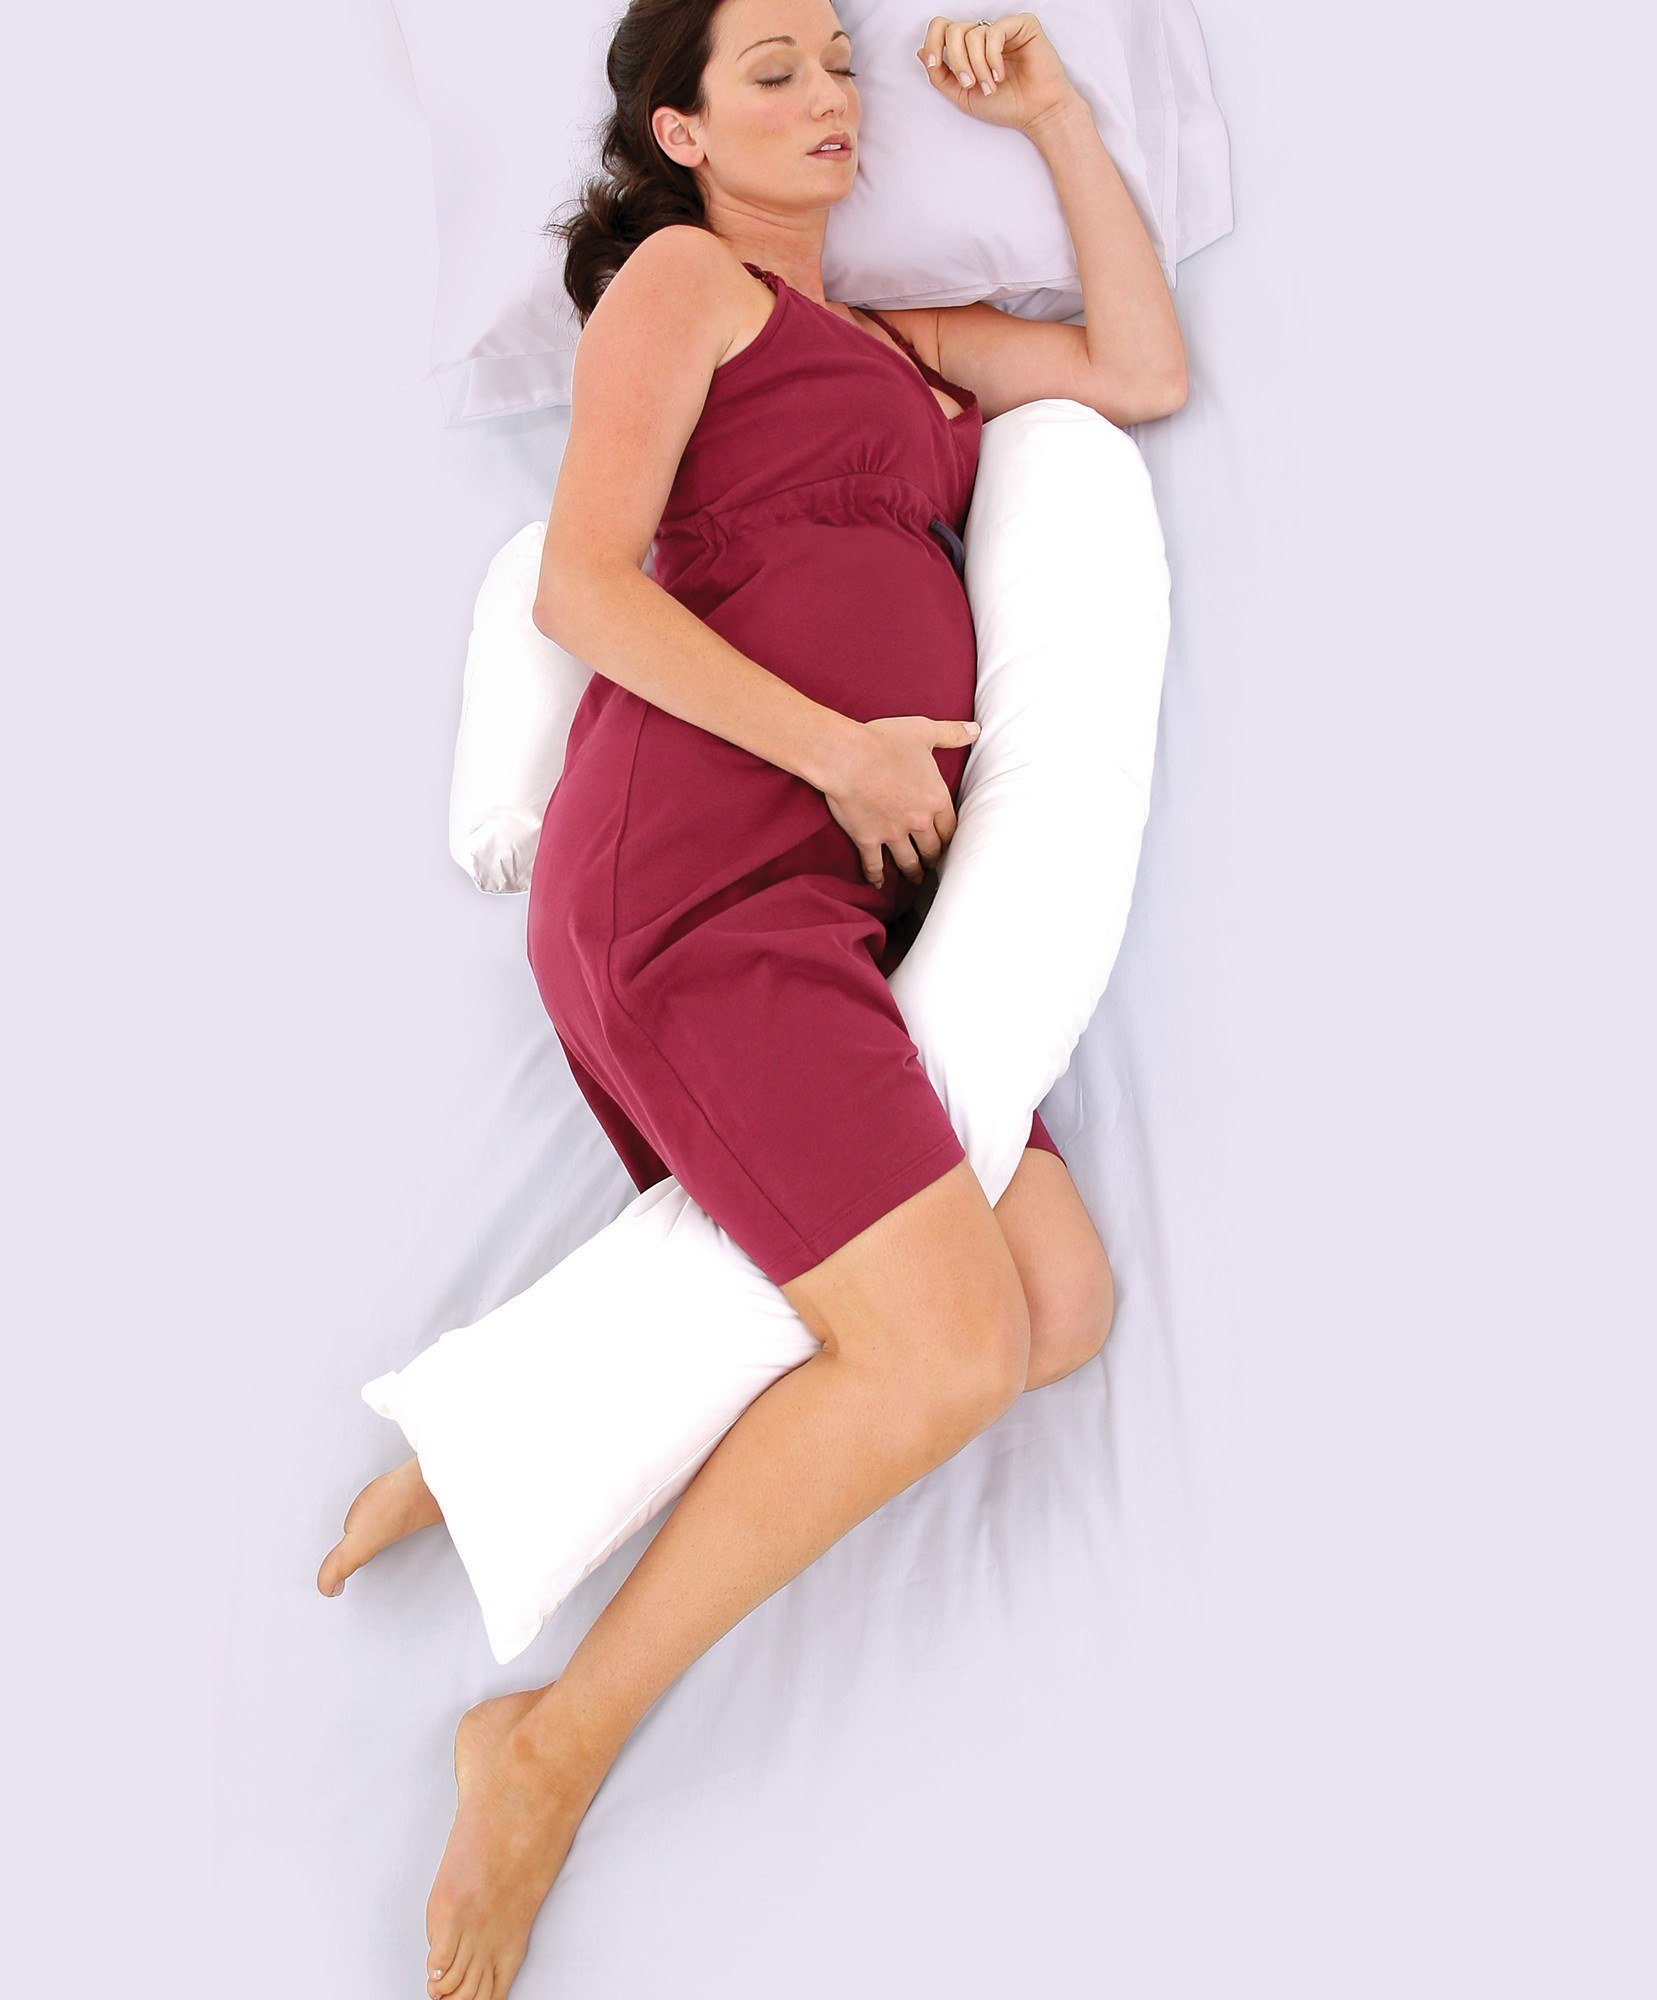 Pillow for pregnant women24